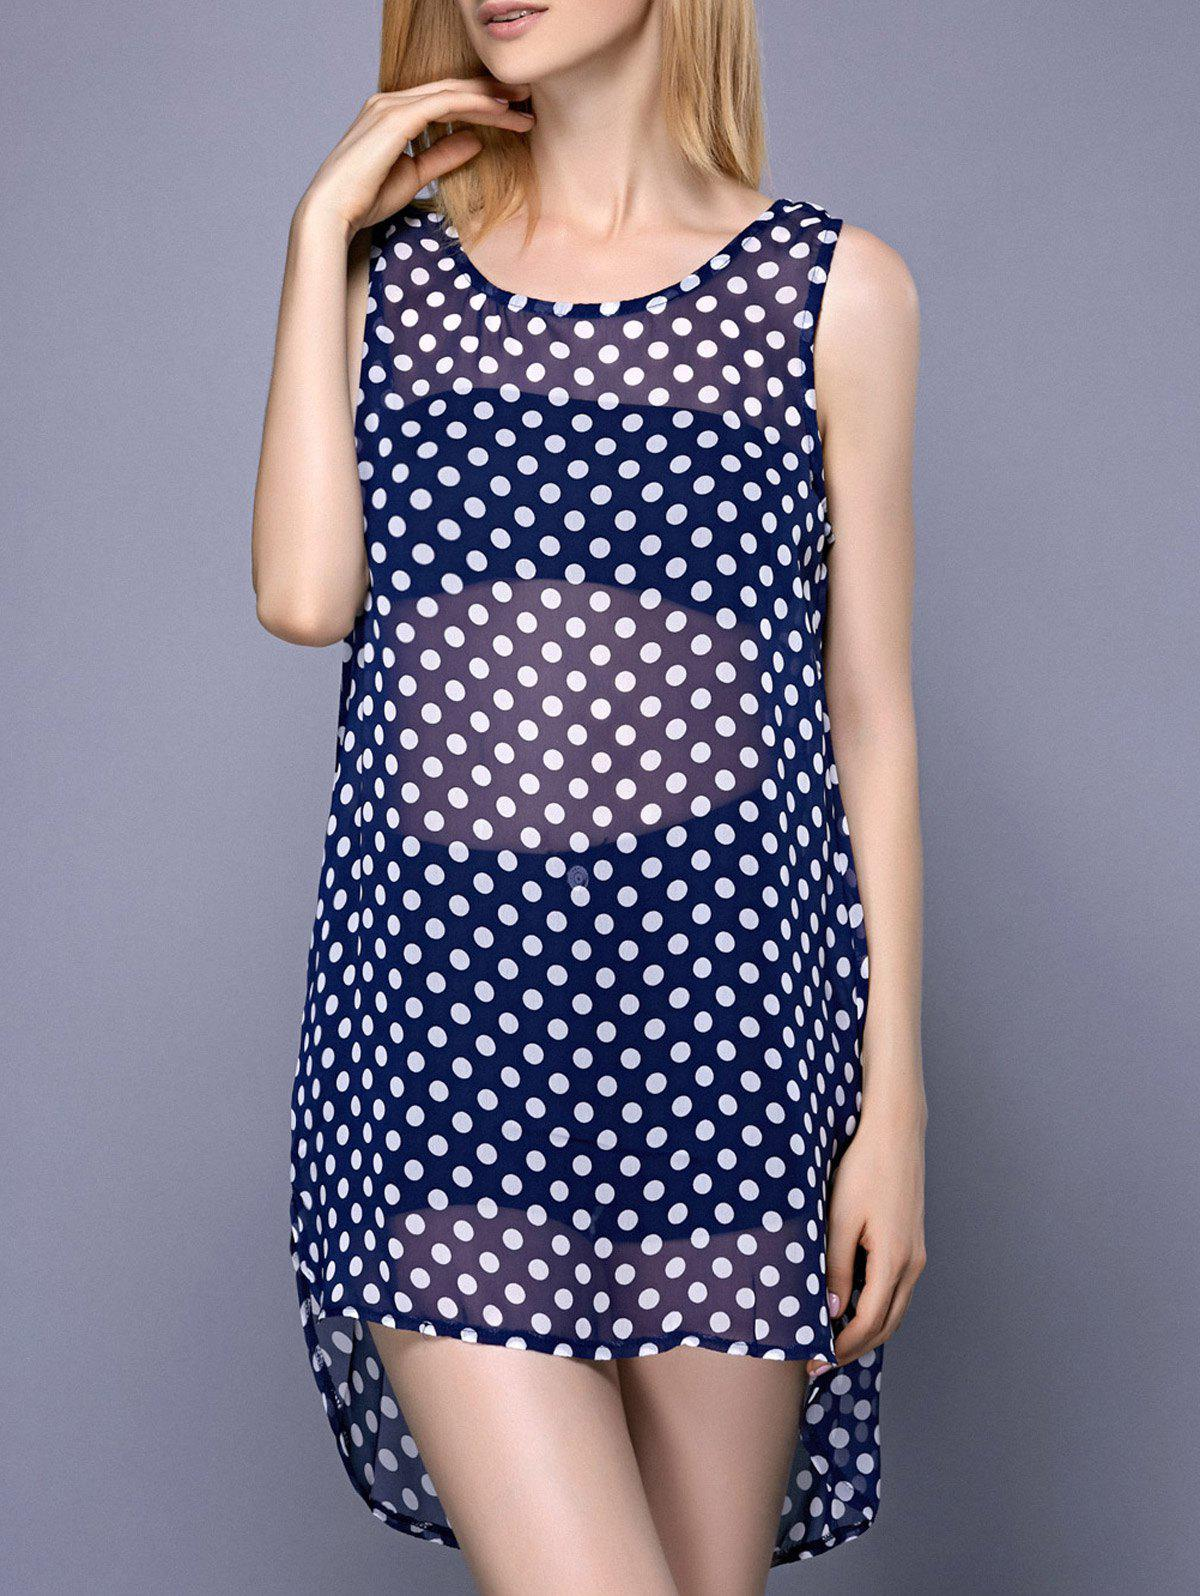 Fashionable Women's Scoop Neck Polka Dot High Low Cover-Up - BLUE 2XL